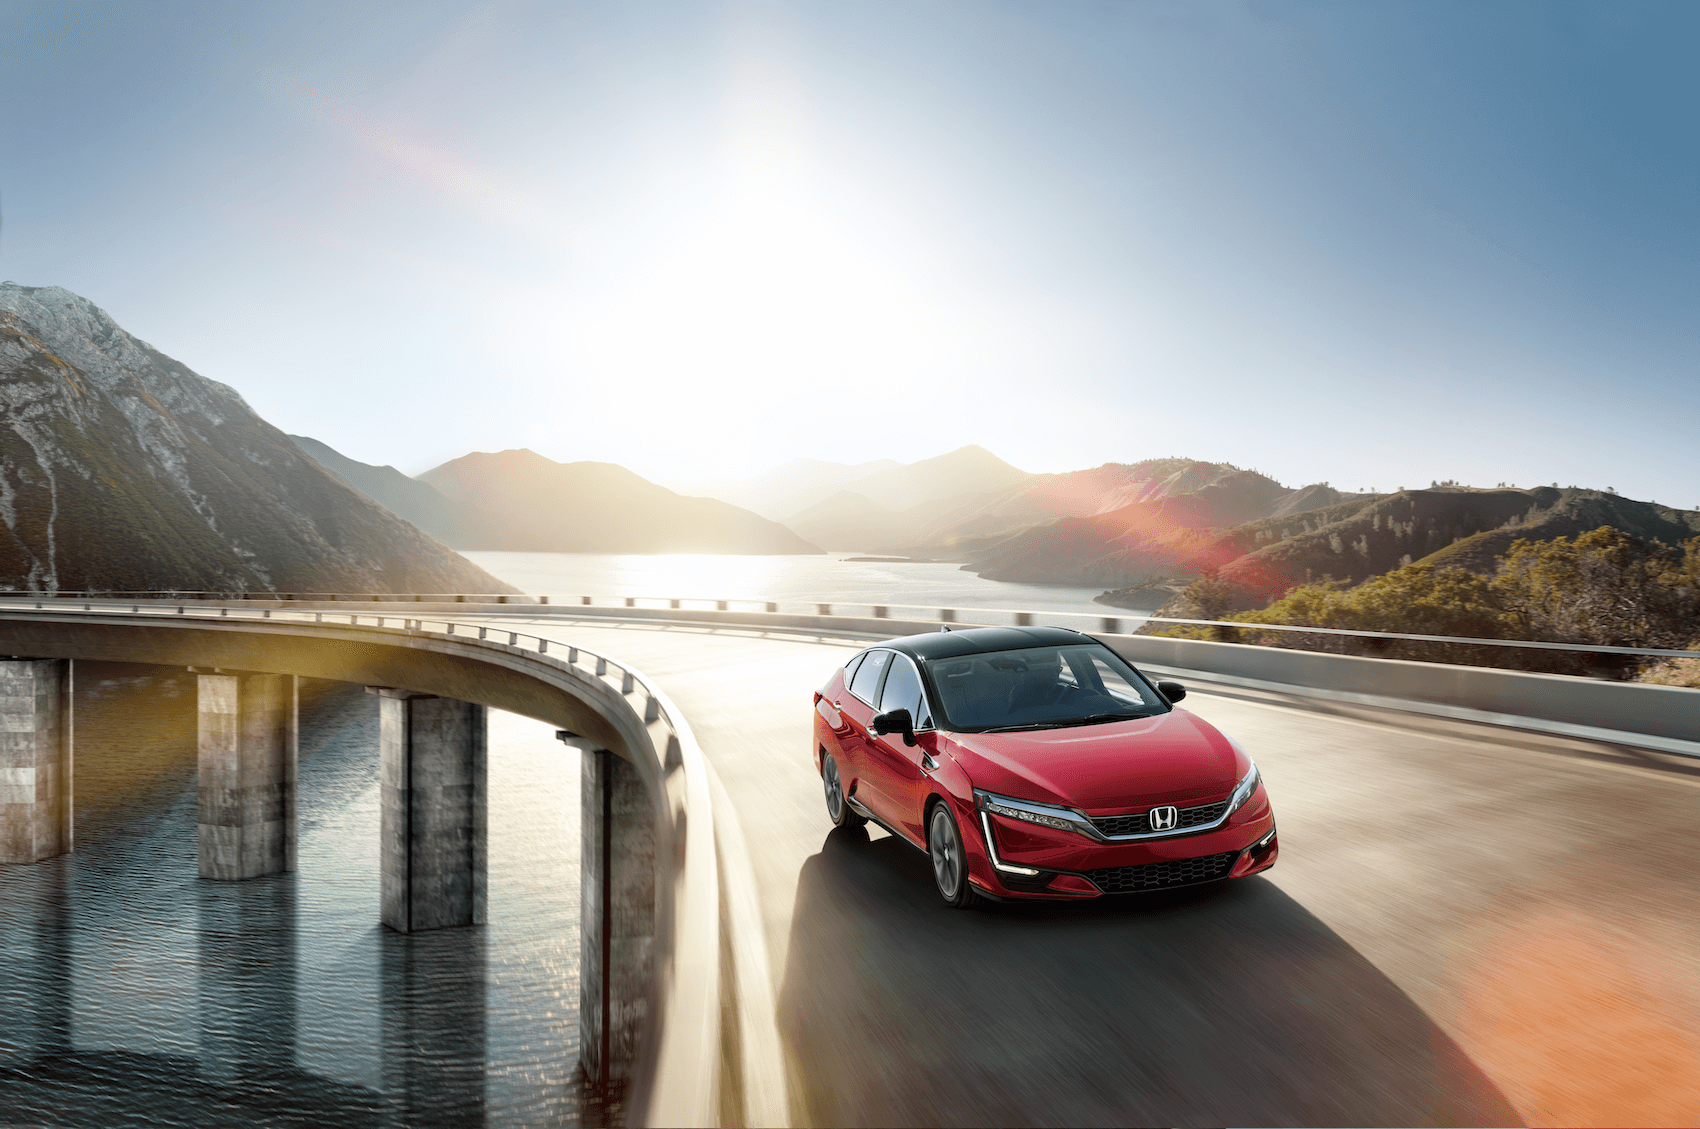 Benefits of Driving the Honda Clarity